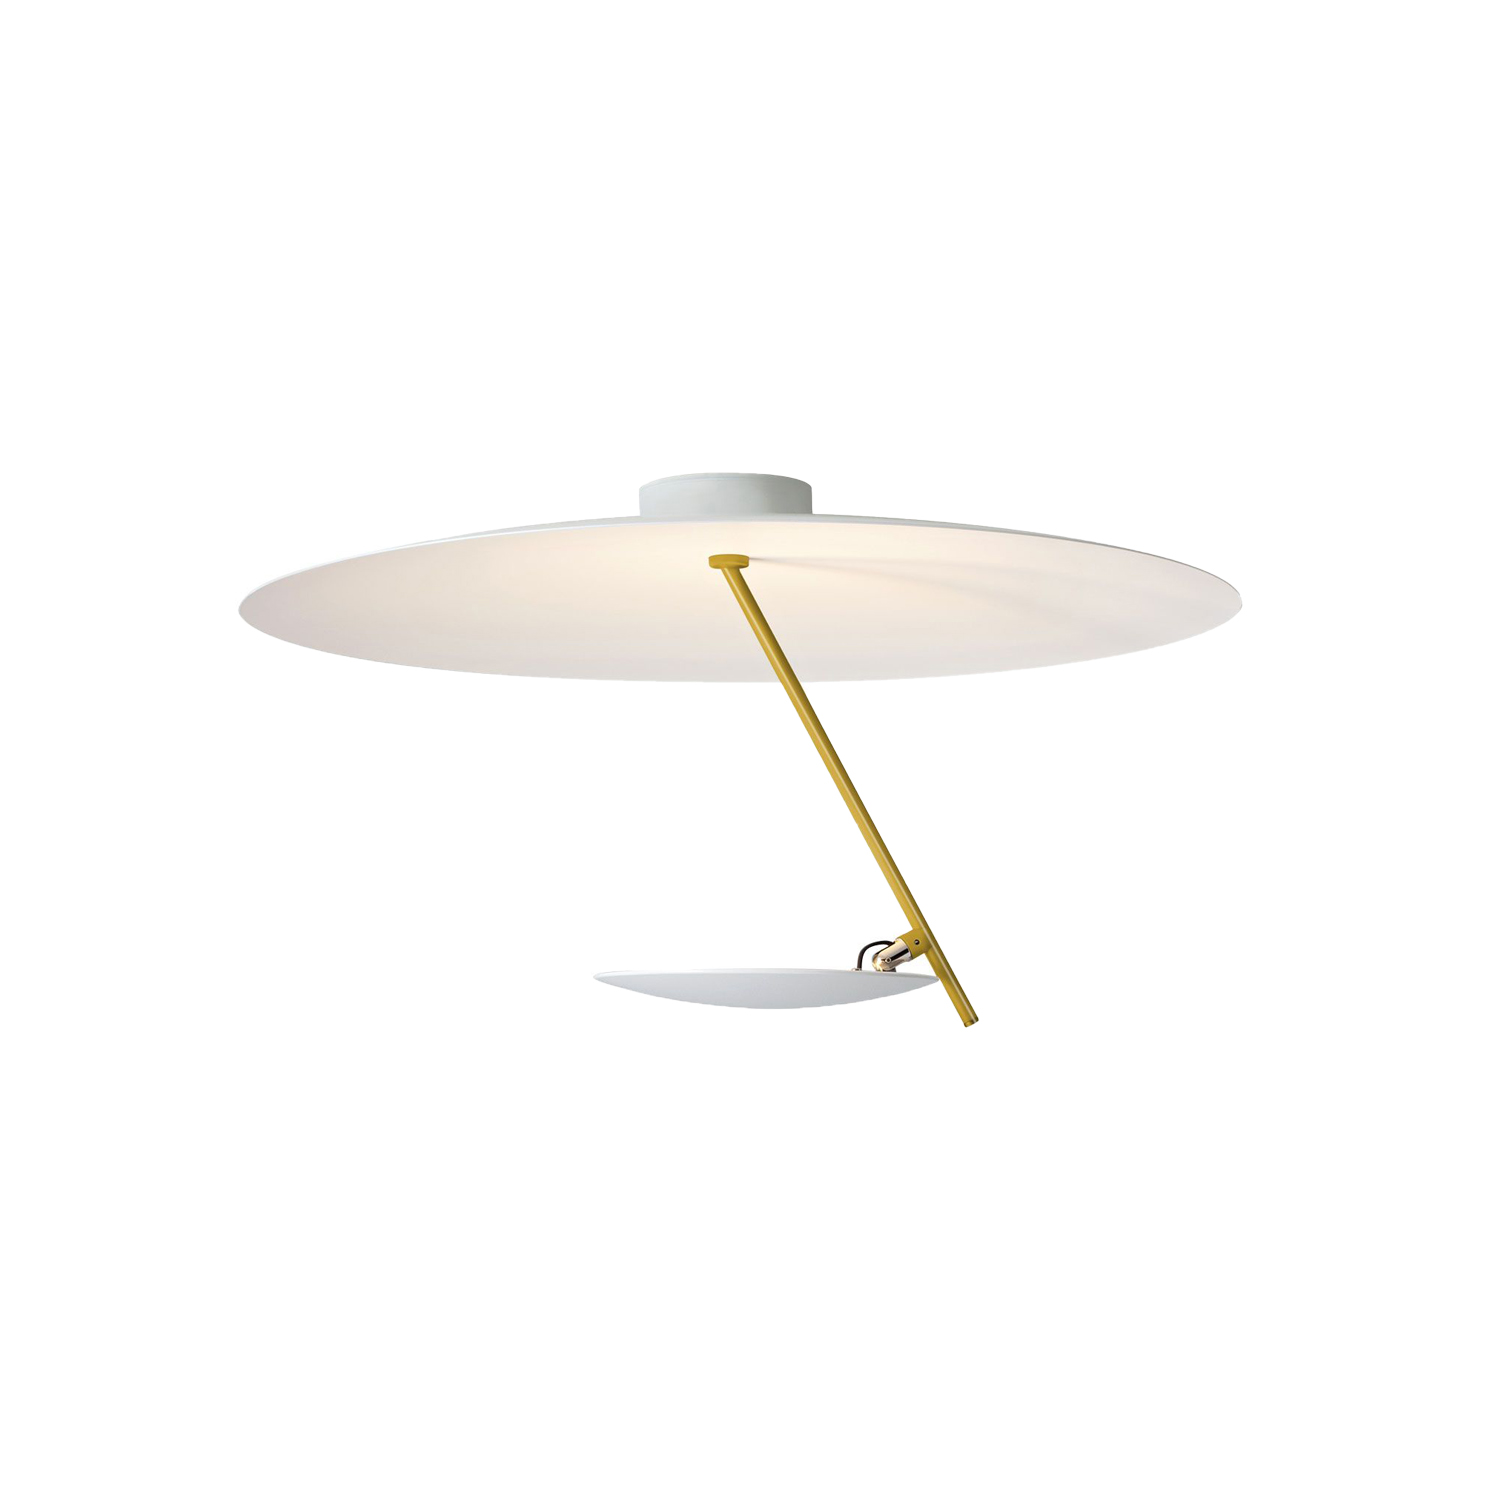 Lederam C150 Ceiling Lamp - Lederam embodies the accuracy of the motion required to draw a line. The warm, softly coloured disks surround a LED module with an ultra-flat shape, which creates thin lamps and suspended forms with curved, sinuous lines. | Matter of Stuff